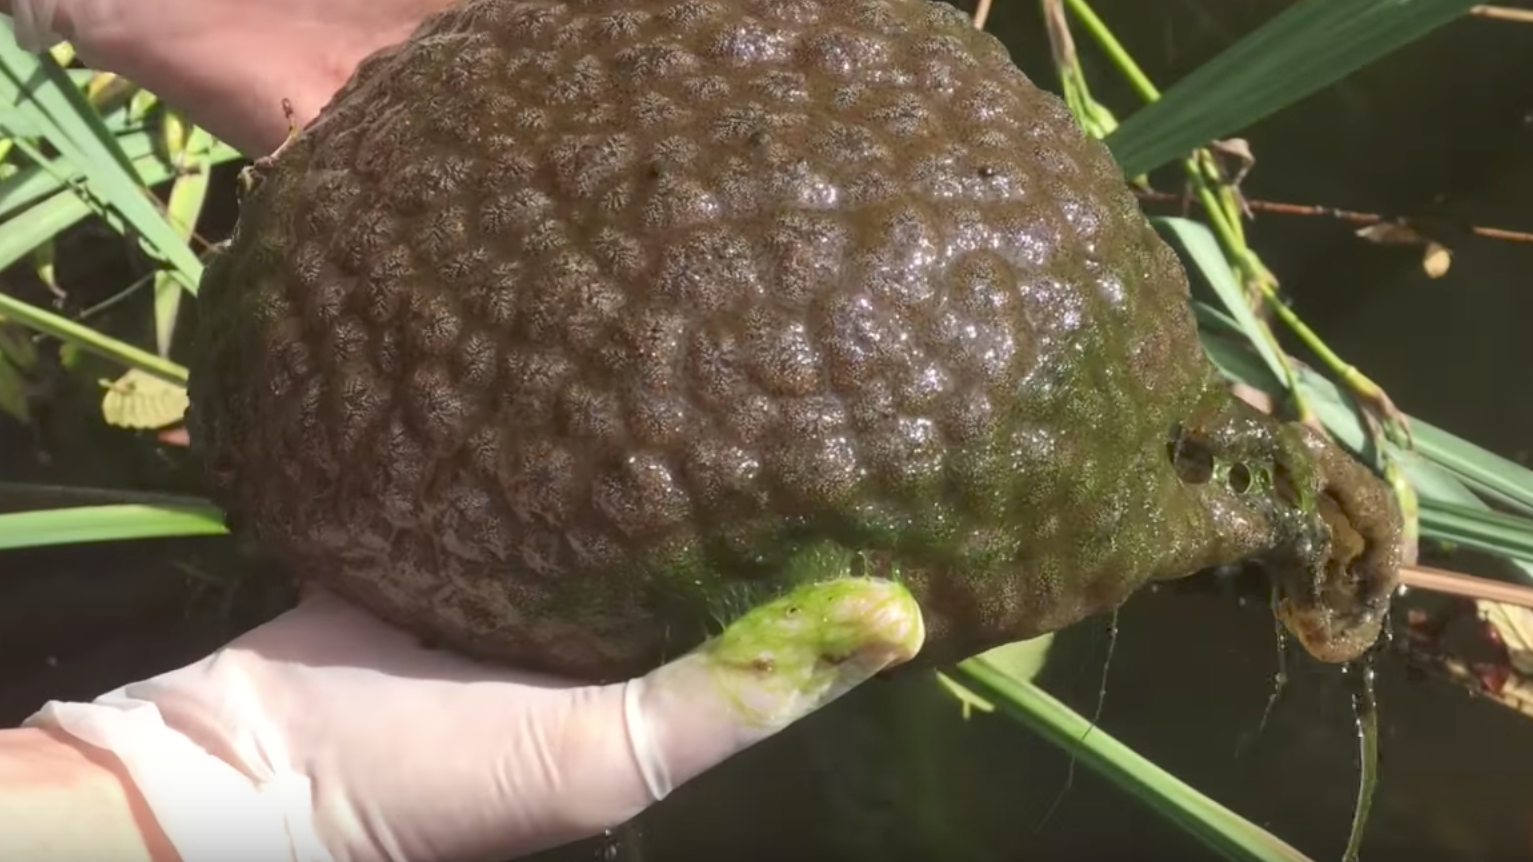 Alien-Like Blob Found In Lake Is Actually A Living Thing